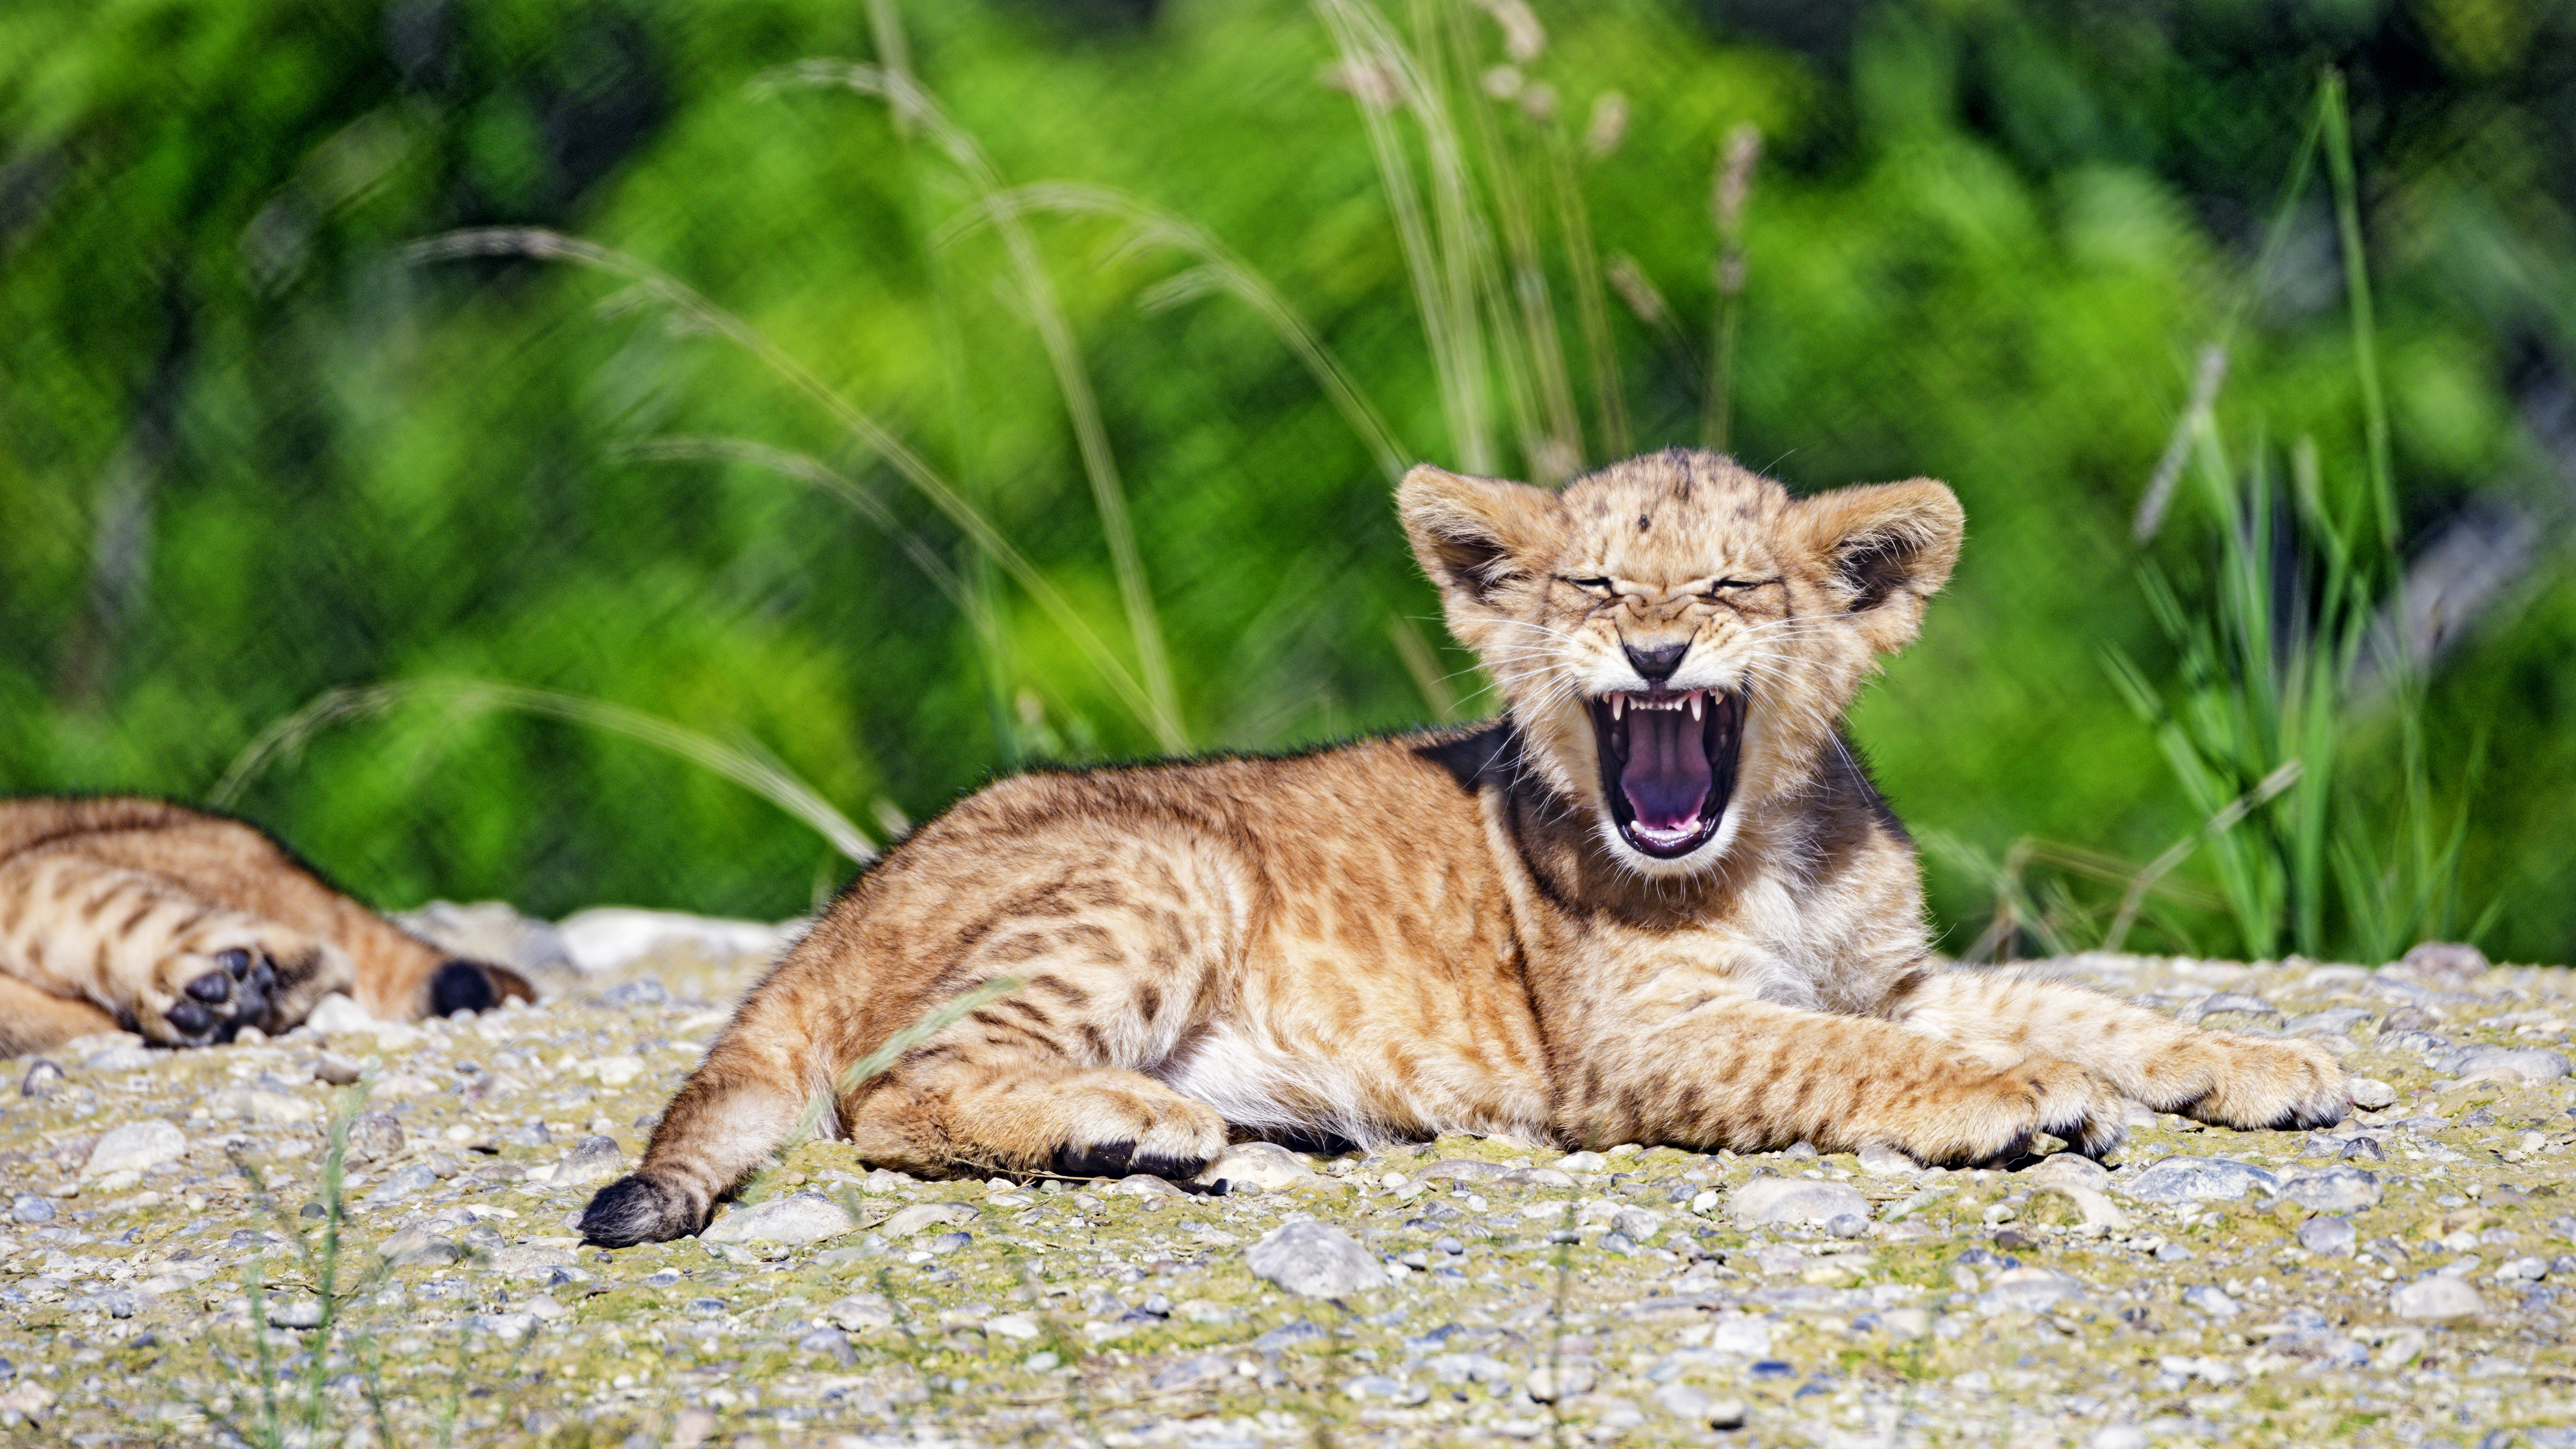 76695 download wallpaper Animals, Lion Cub, Lion, Young, Joey, Zev, Throat, Animal screensavers and pictures for free